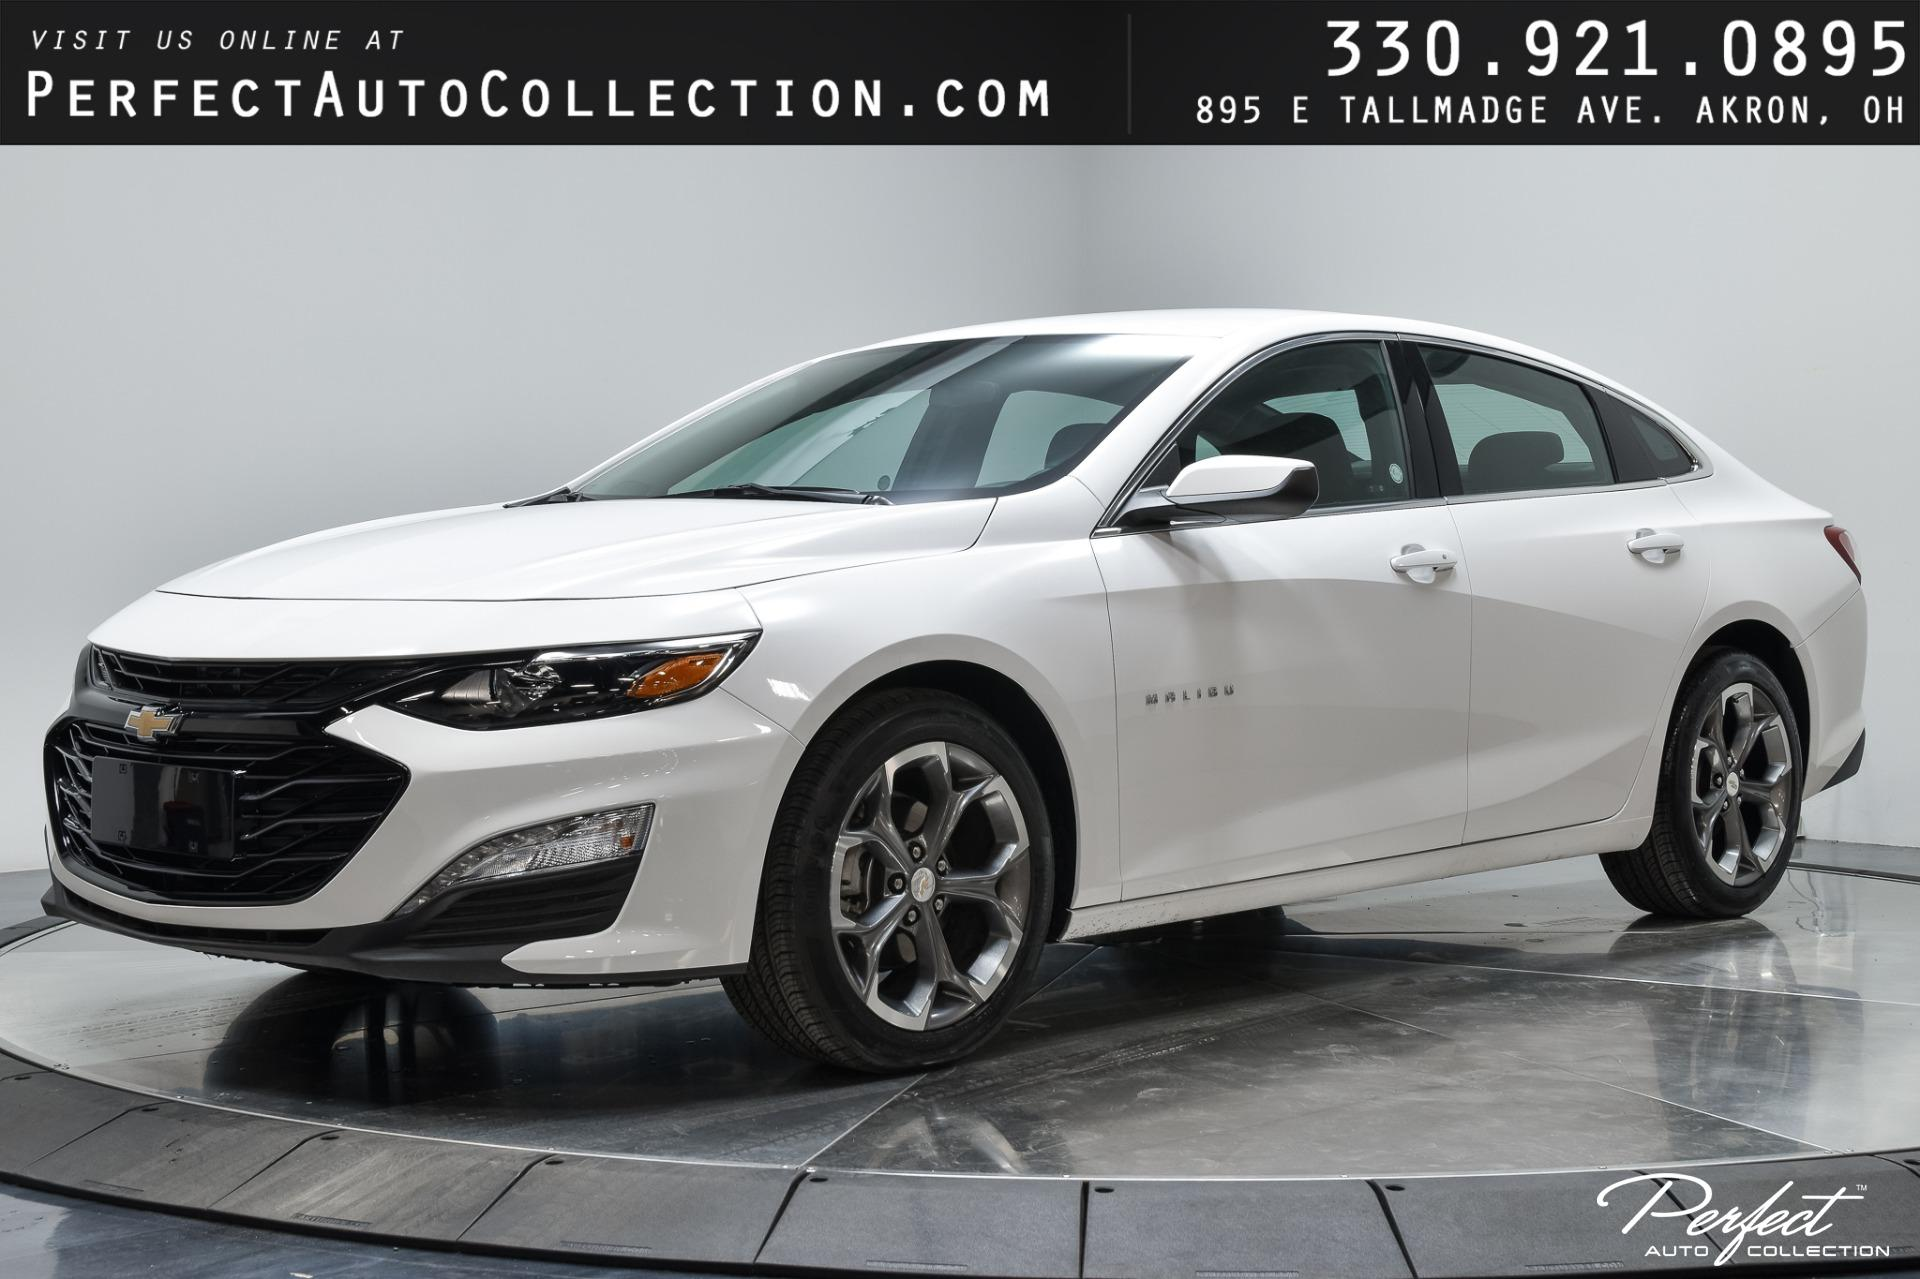 Used 2020 Chevrolet Malibu LT for sale $17,895 at Perfect Auto Collection in Akron OH 44310 1